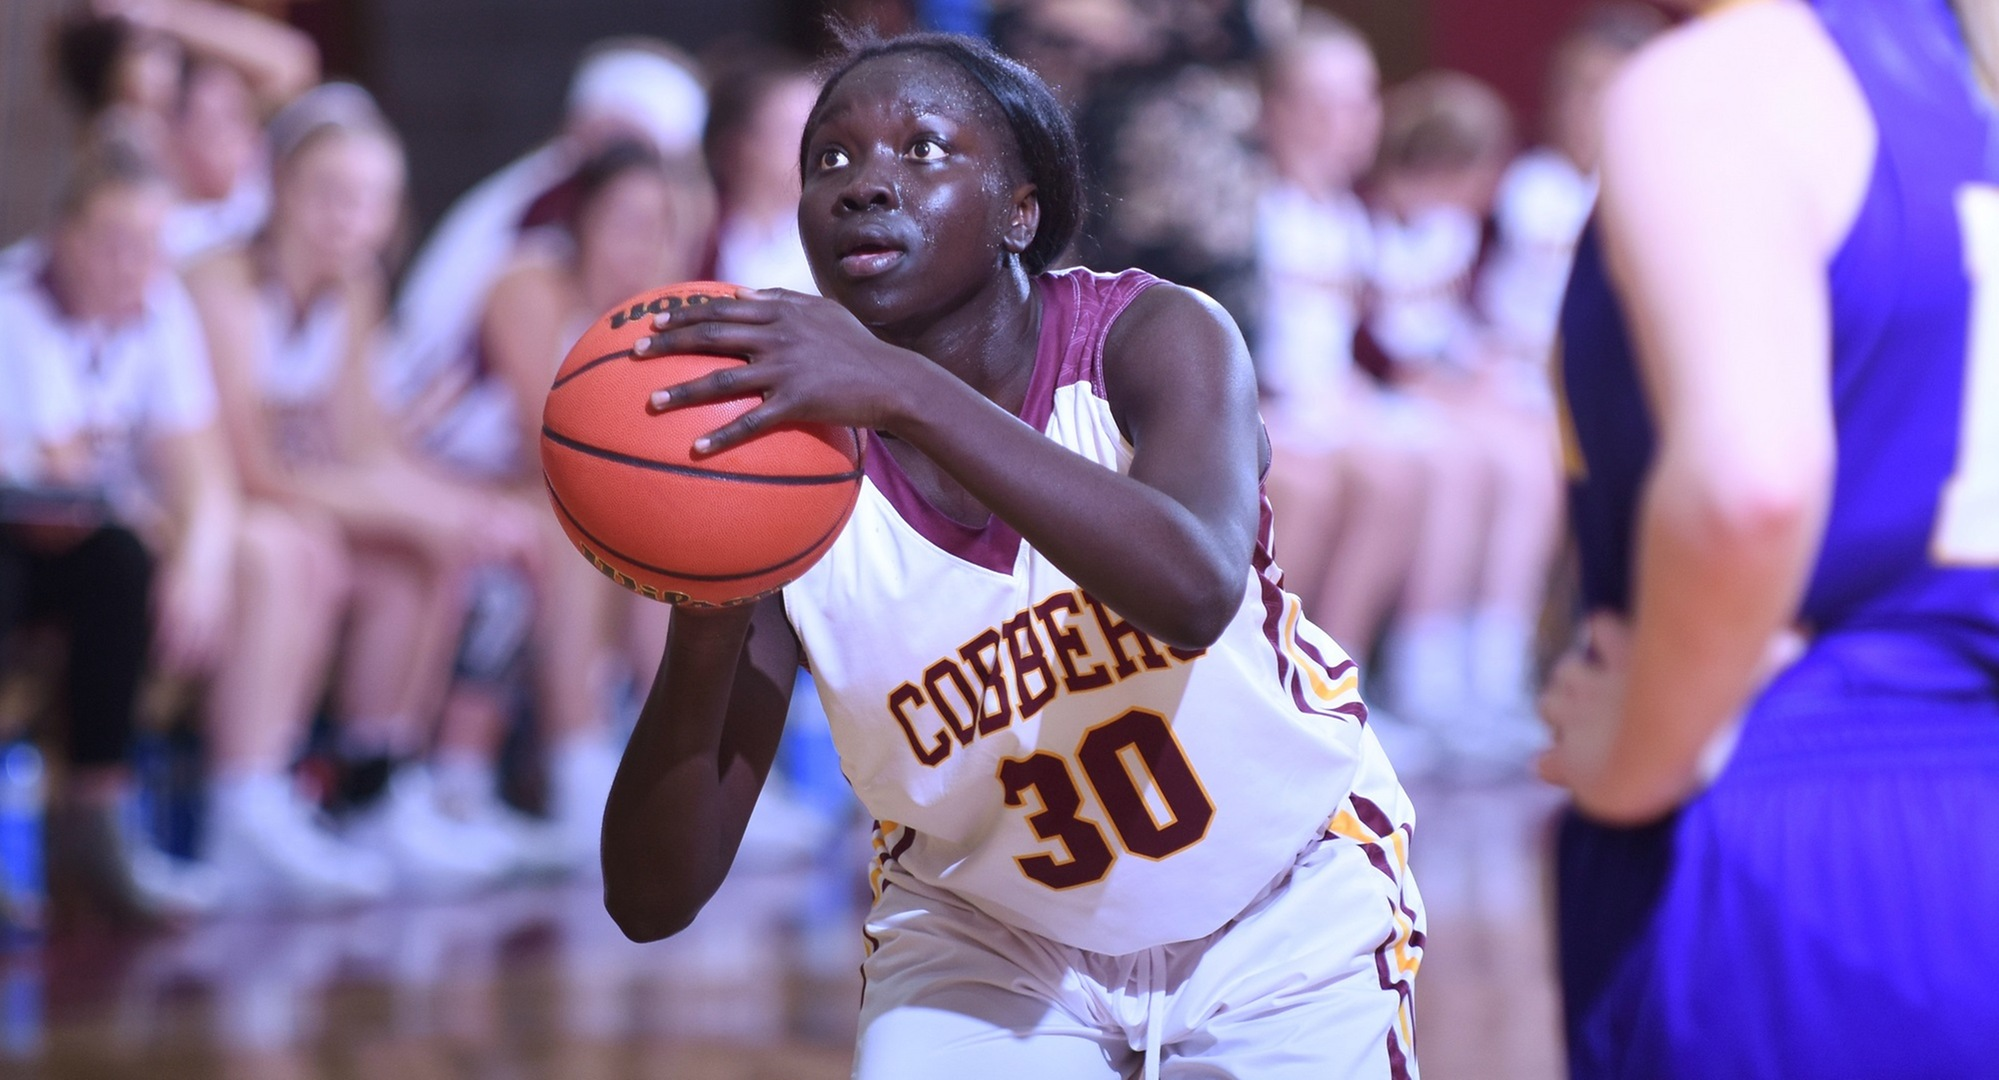 Mary Sem lines up to take a free throw during one of the Cobbers' home games this season. She leads the team in scoring.